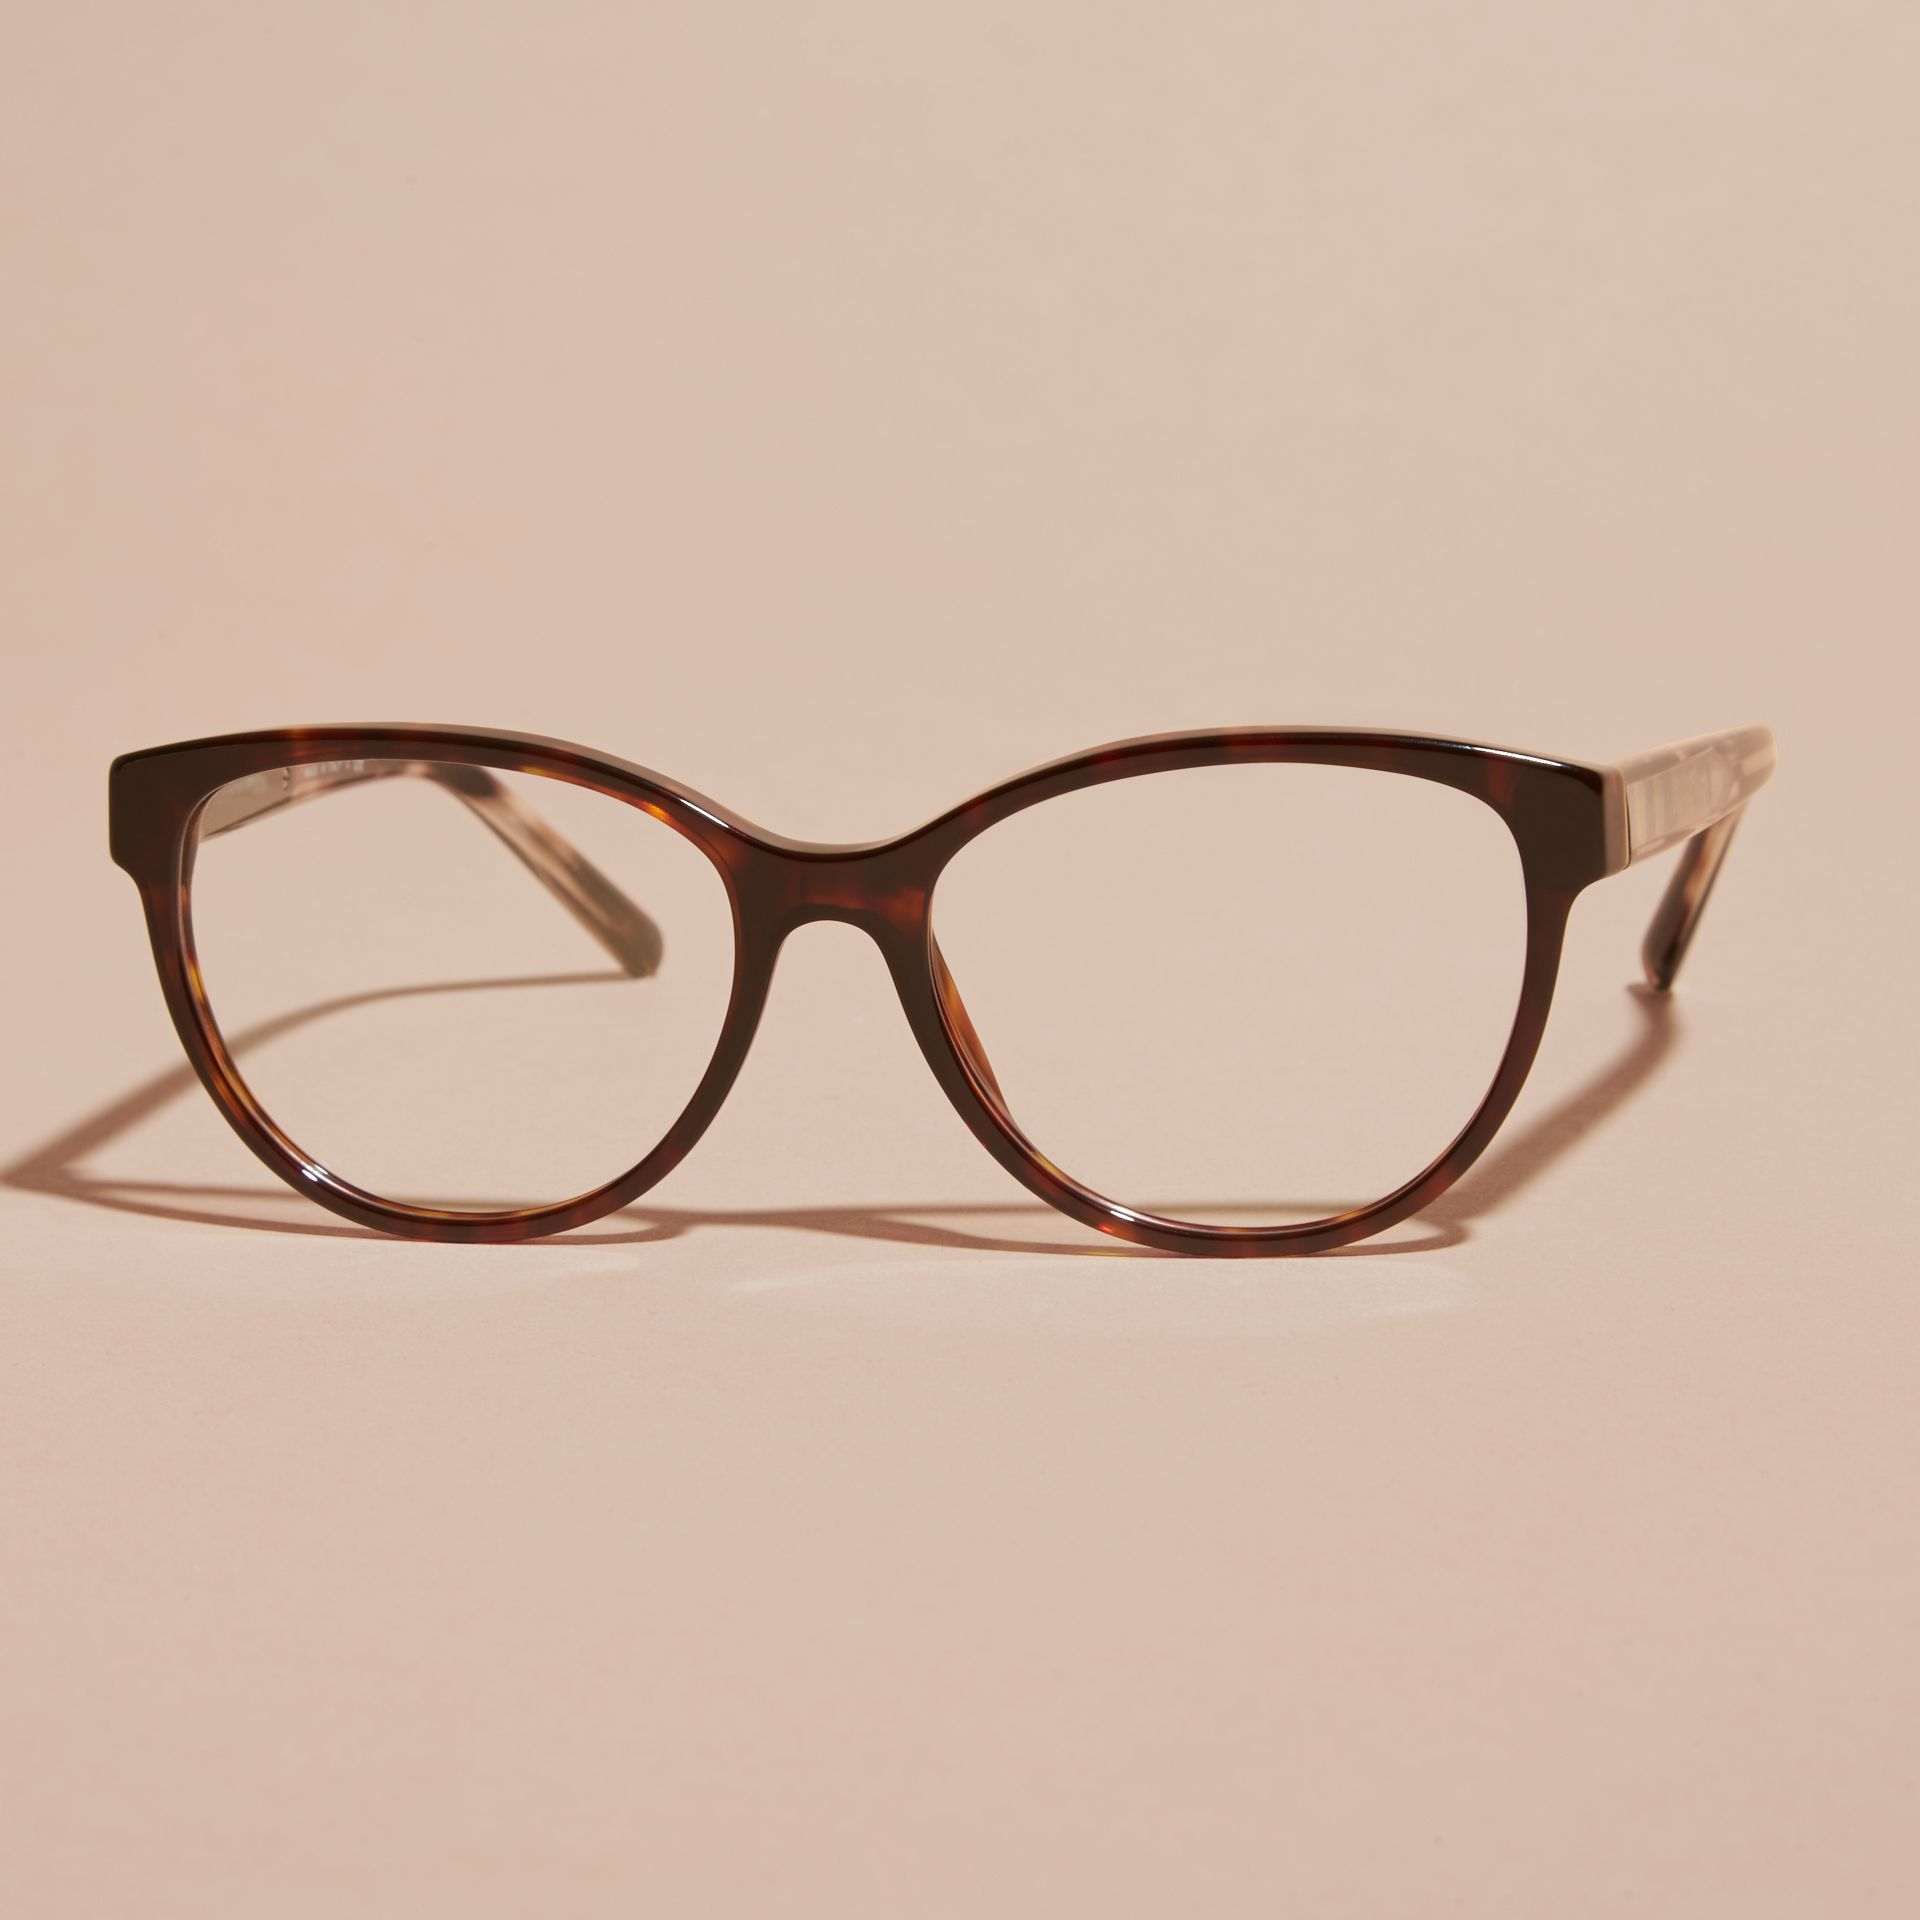 Light russet brown Check Detail Round Optical Frames Light Russet Brown - gallery image 3